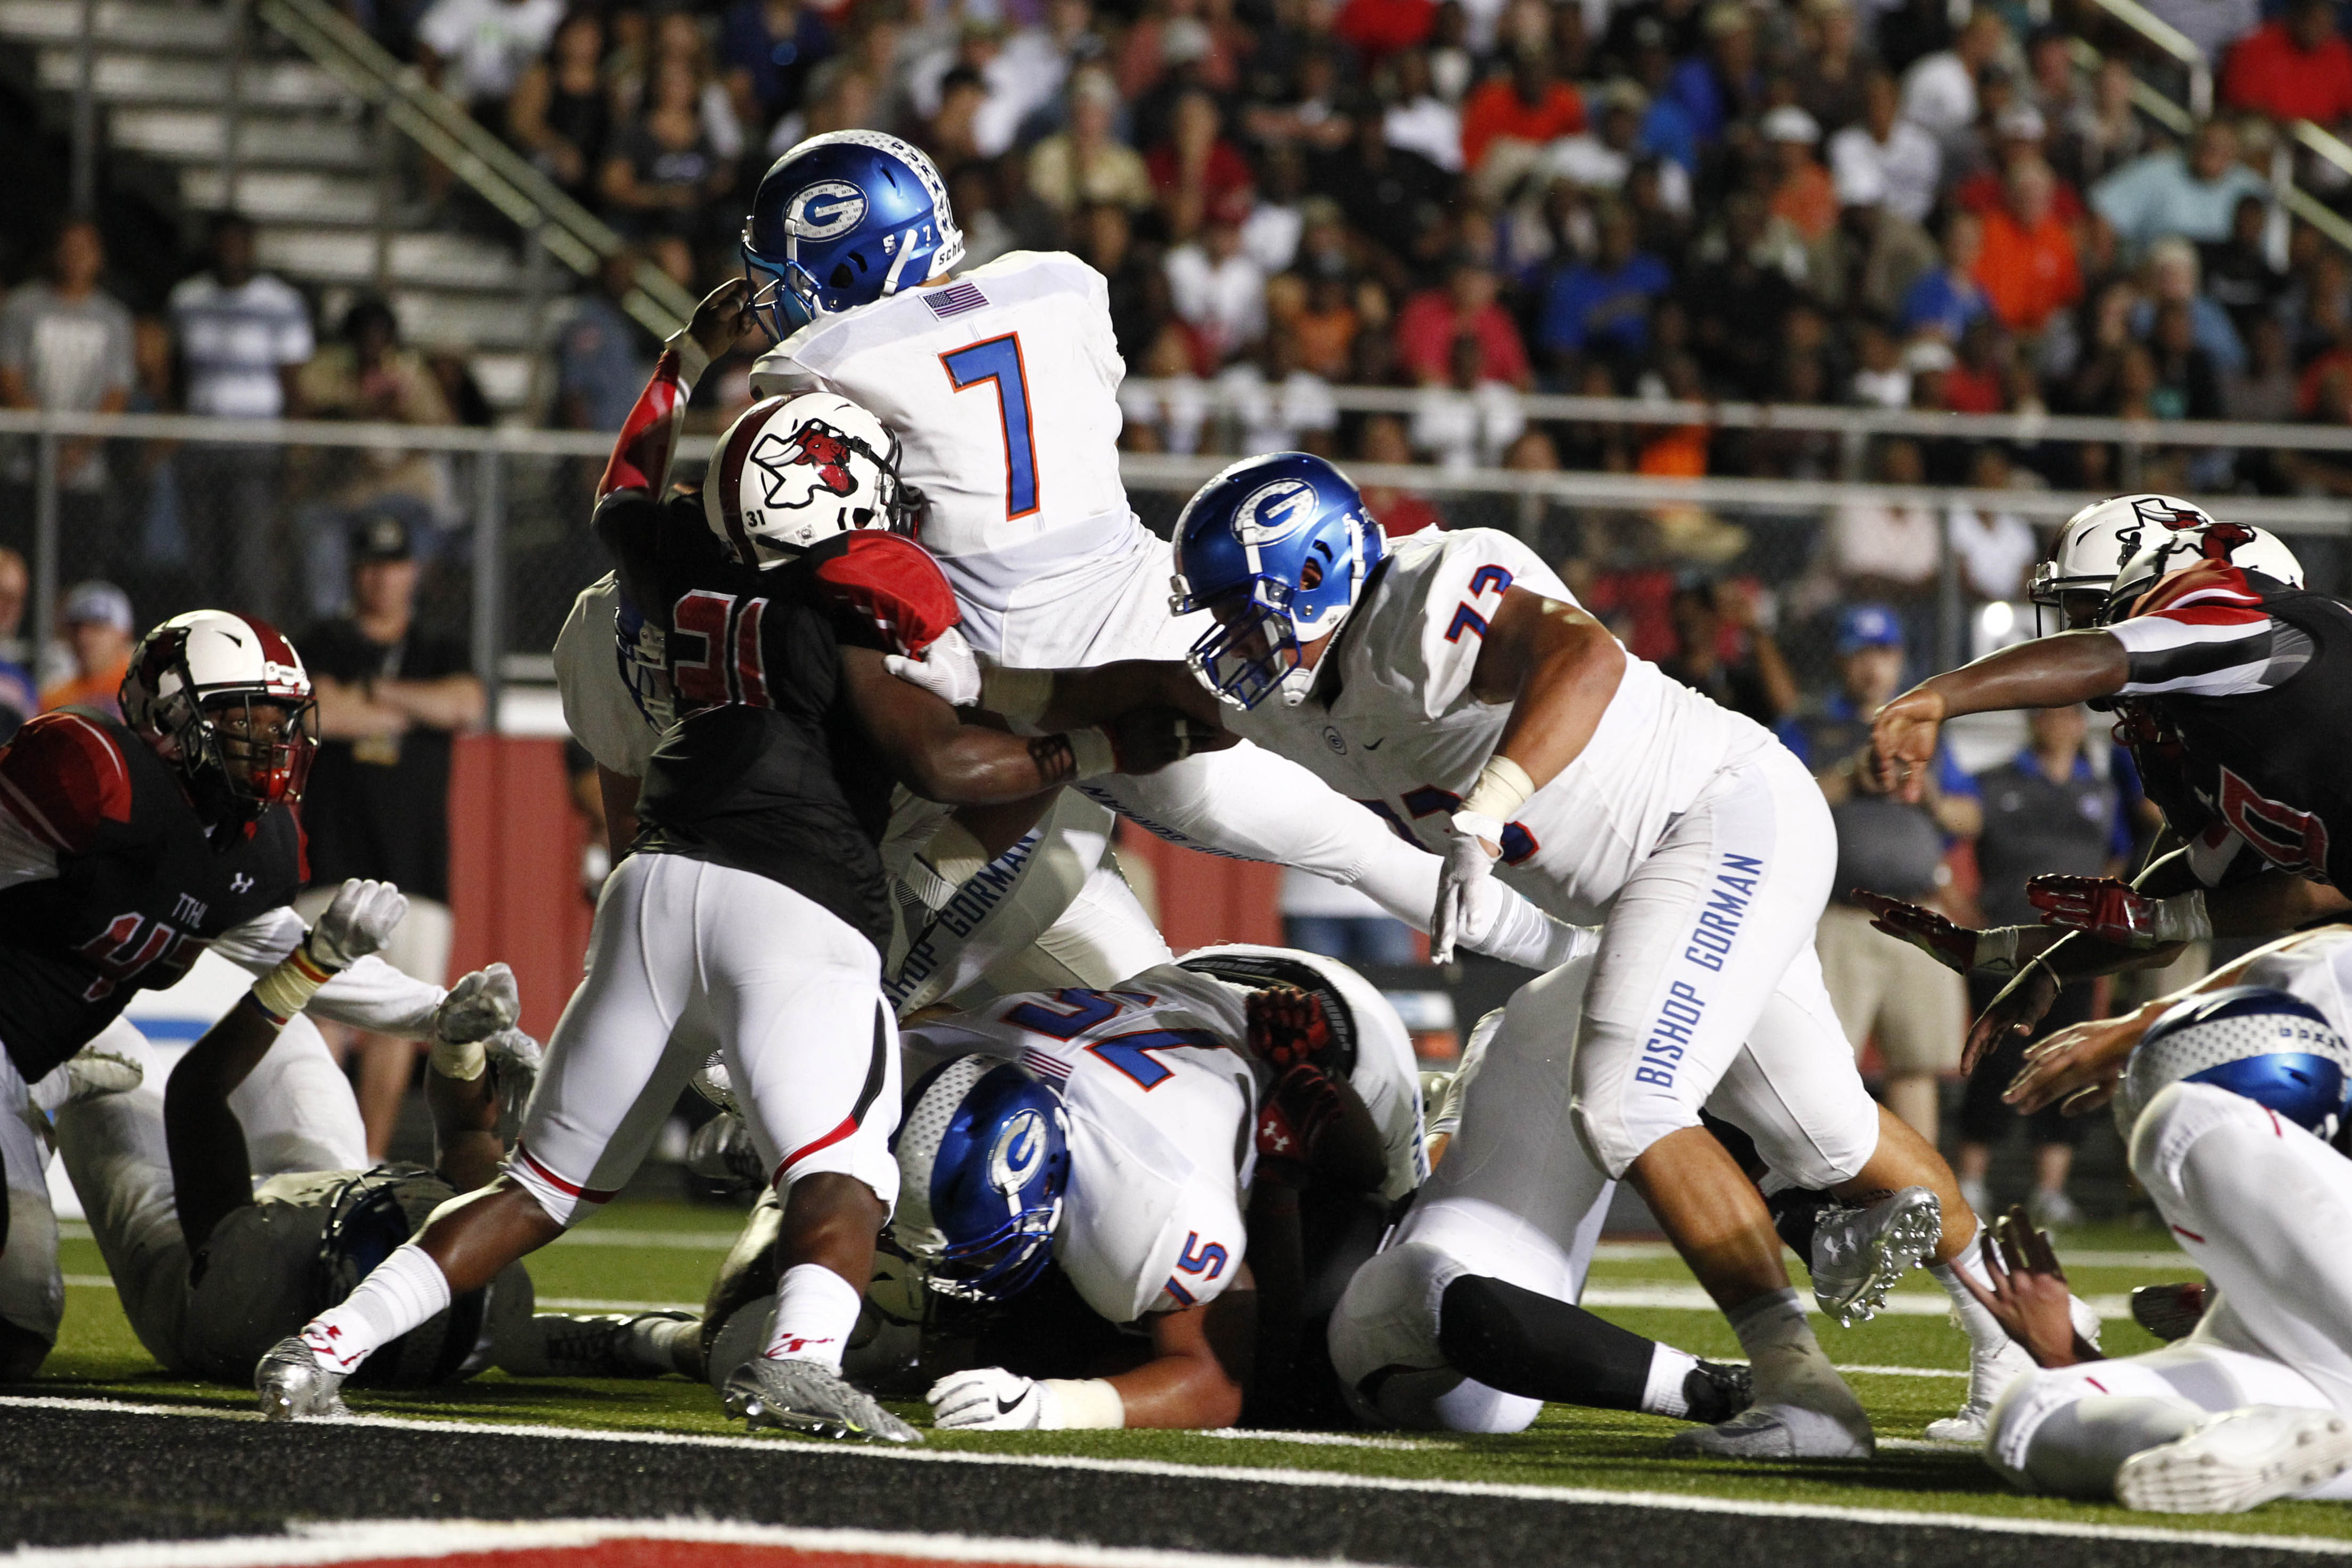 Aug 27, 2016; Cedar Hill, TX, USA; Bishop Gorman Gaels running back Baggio Ali Walsh (7) runs for a touchdown in the second quarter against Cedar Hill Longhorns linebacker Caleb Scott (31) in the second quarter at Longhorn Stadium in Cedar Hill. Mandatory Credit: Tim Heitman-USA TODAY Sports ORG XMIT: USATSI-326116 ORIG FILE ID:  20160827_ajw_sh2_339.jpg